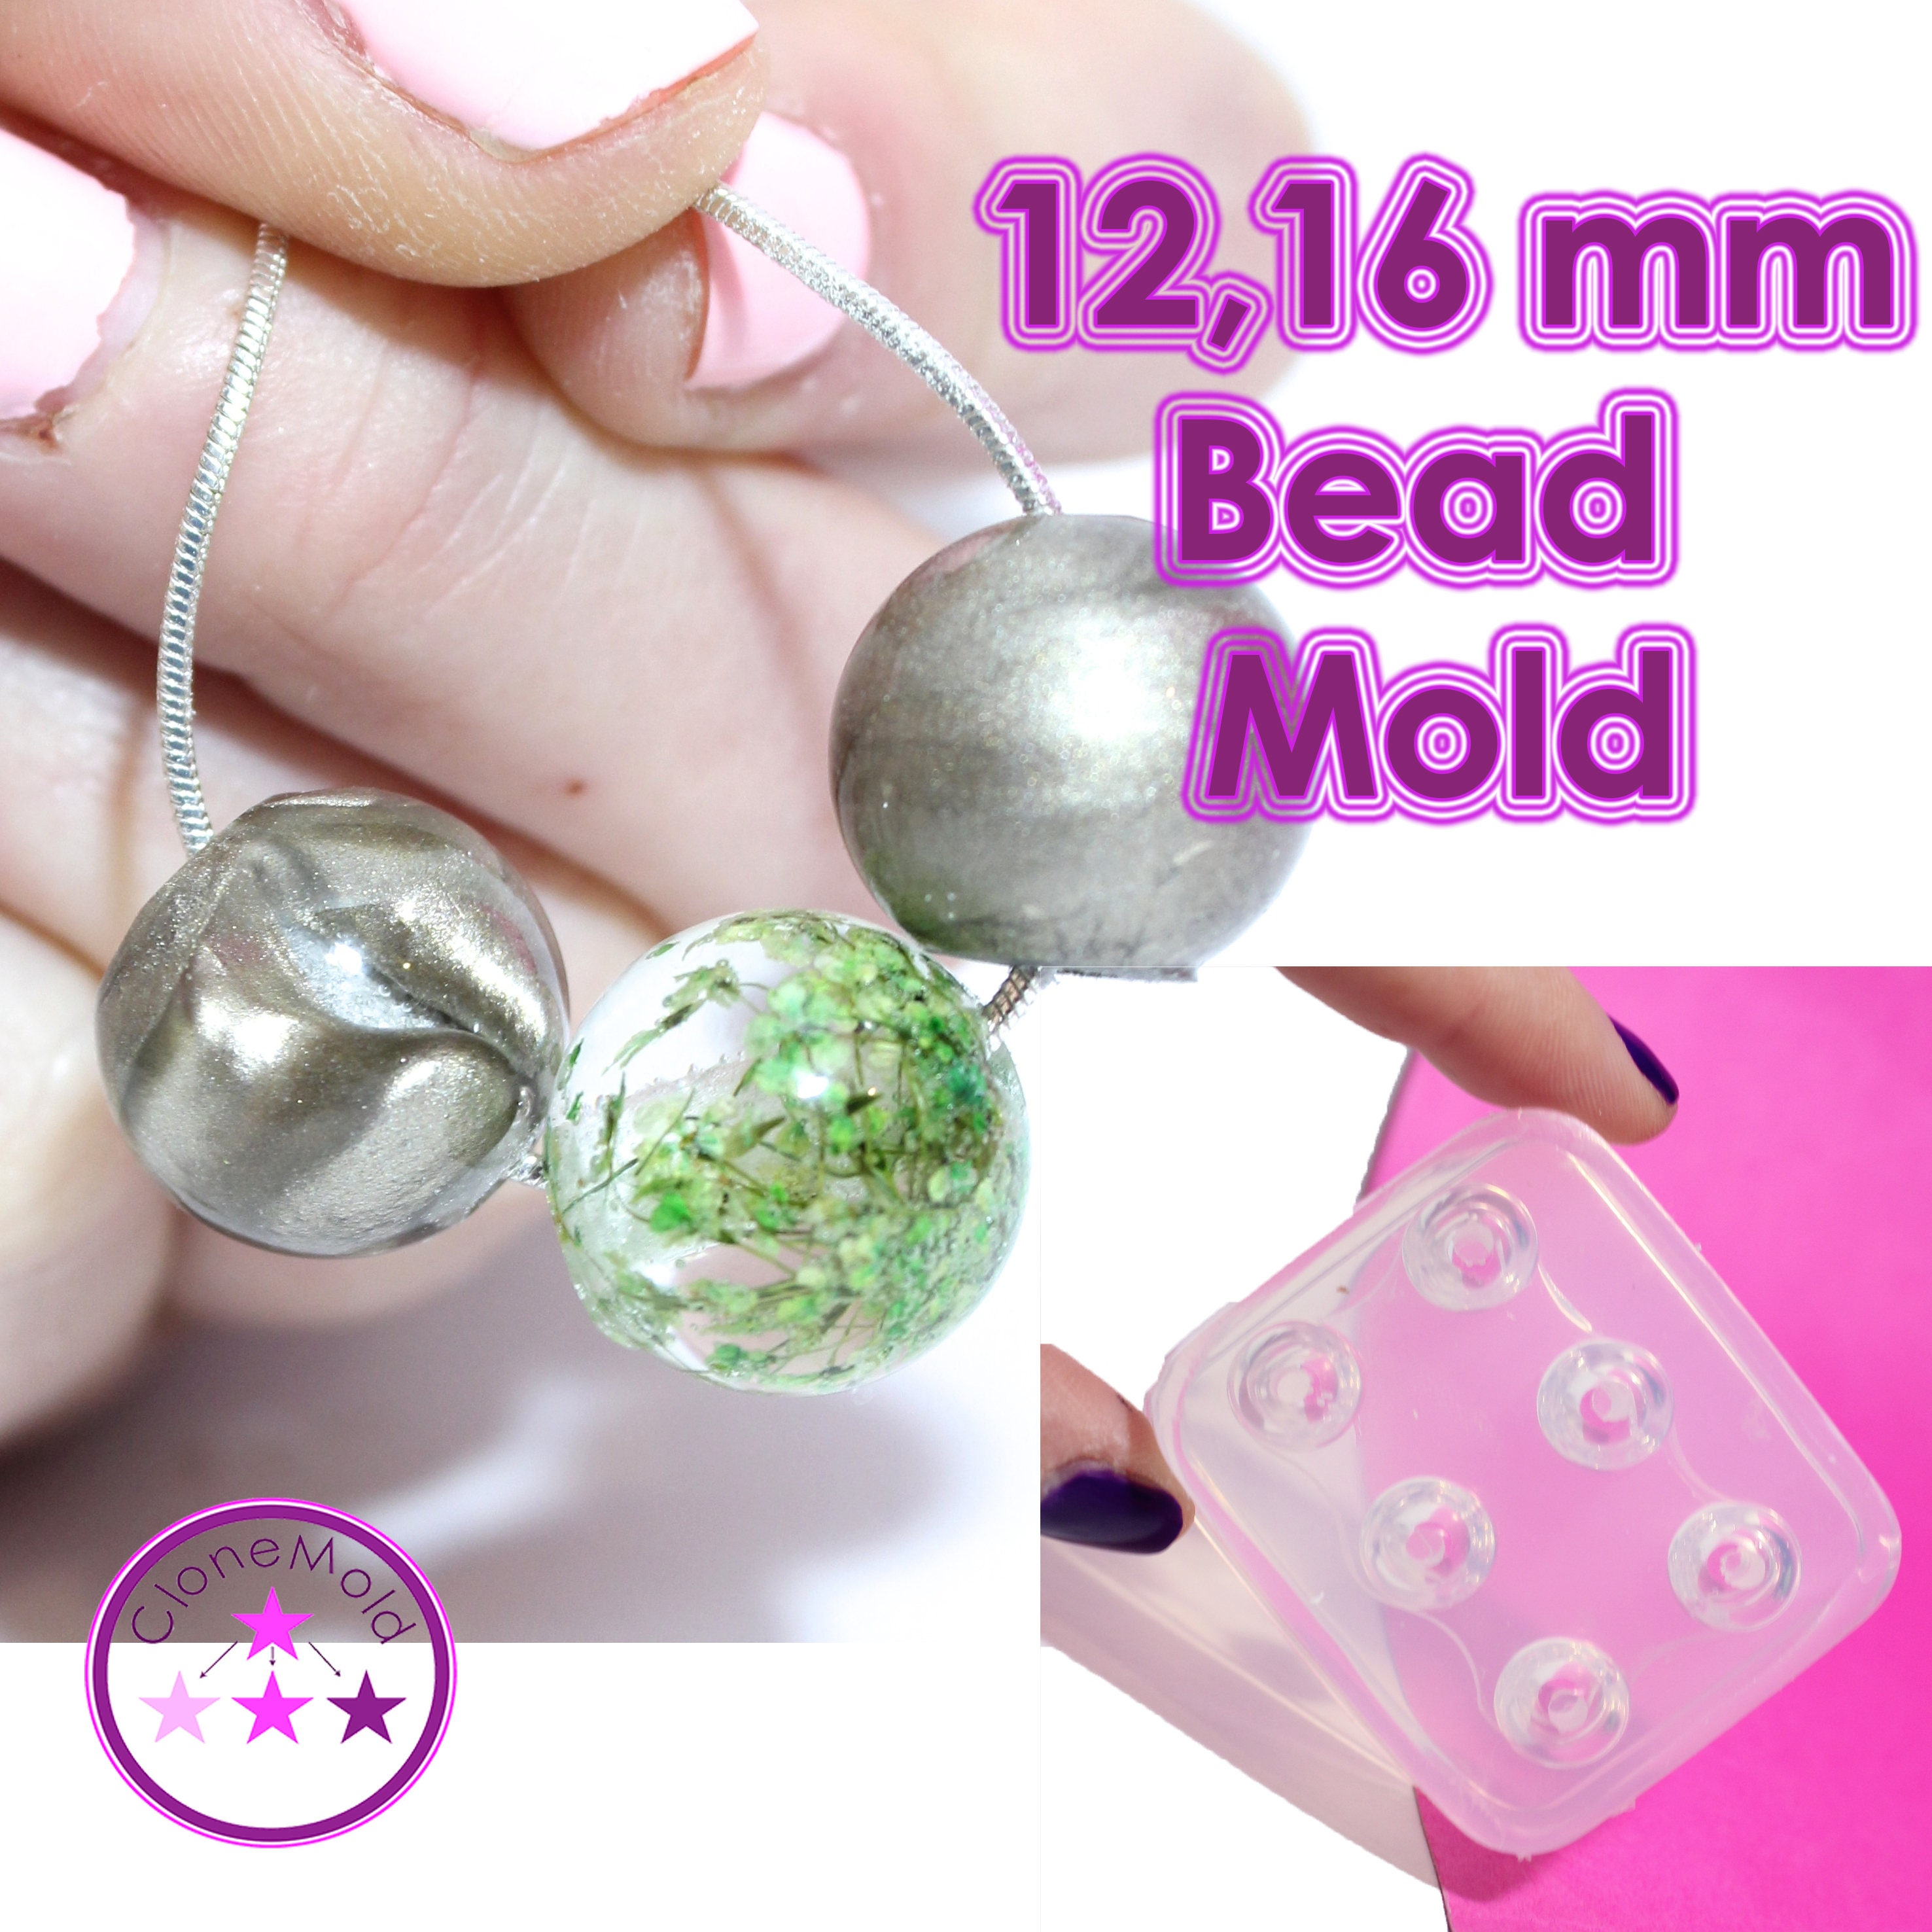 Round Bead Mold Sphere Ball Ball Ball Globe Silicone Rubber; 6 Pieces; 12 or 16 mm 5894ae